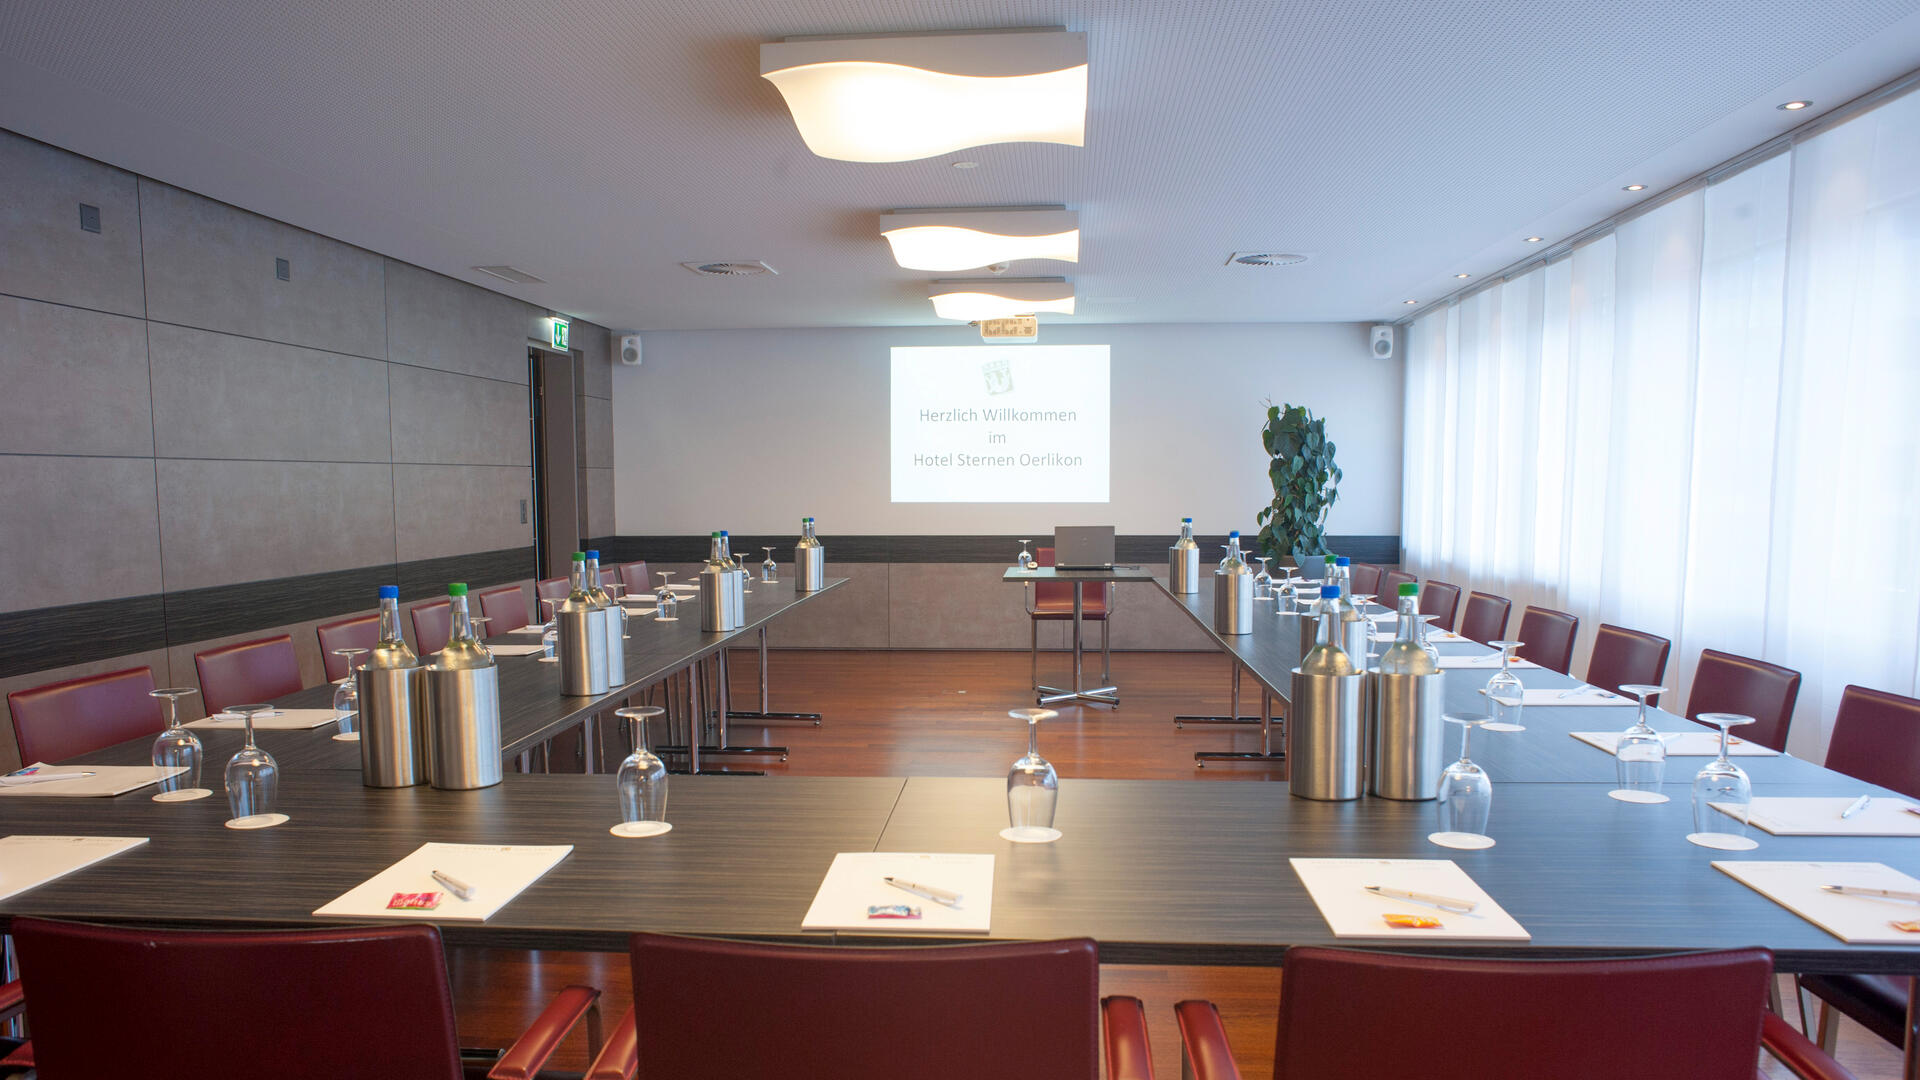 Meeting Rooms at Sternen Oerlikon Hotel